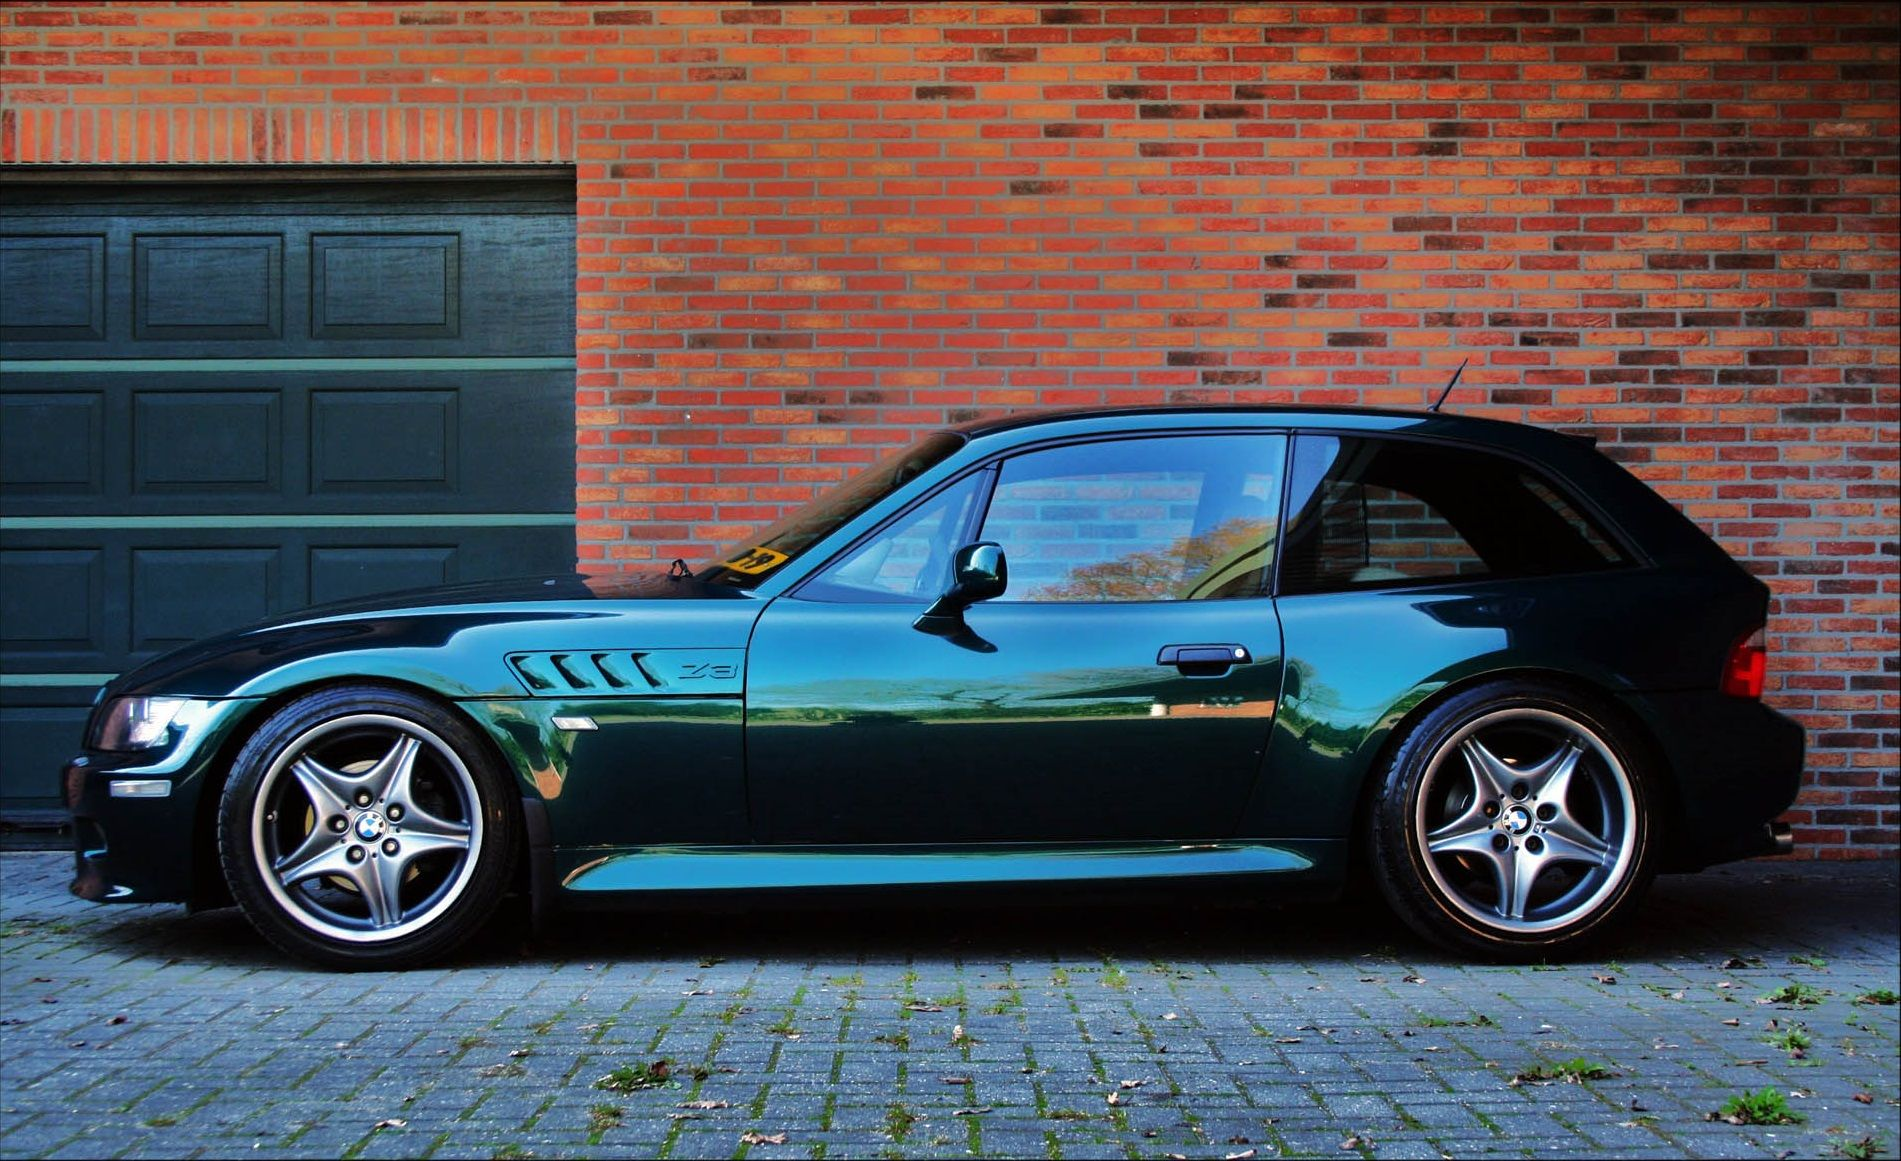 Bmw Z3 Coupe Oxford Green Cars Pinterest Bmw Z3 Bmw